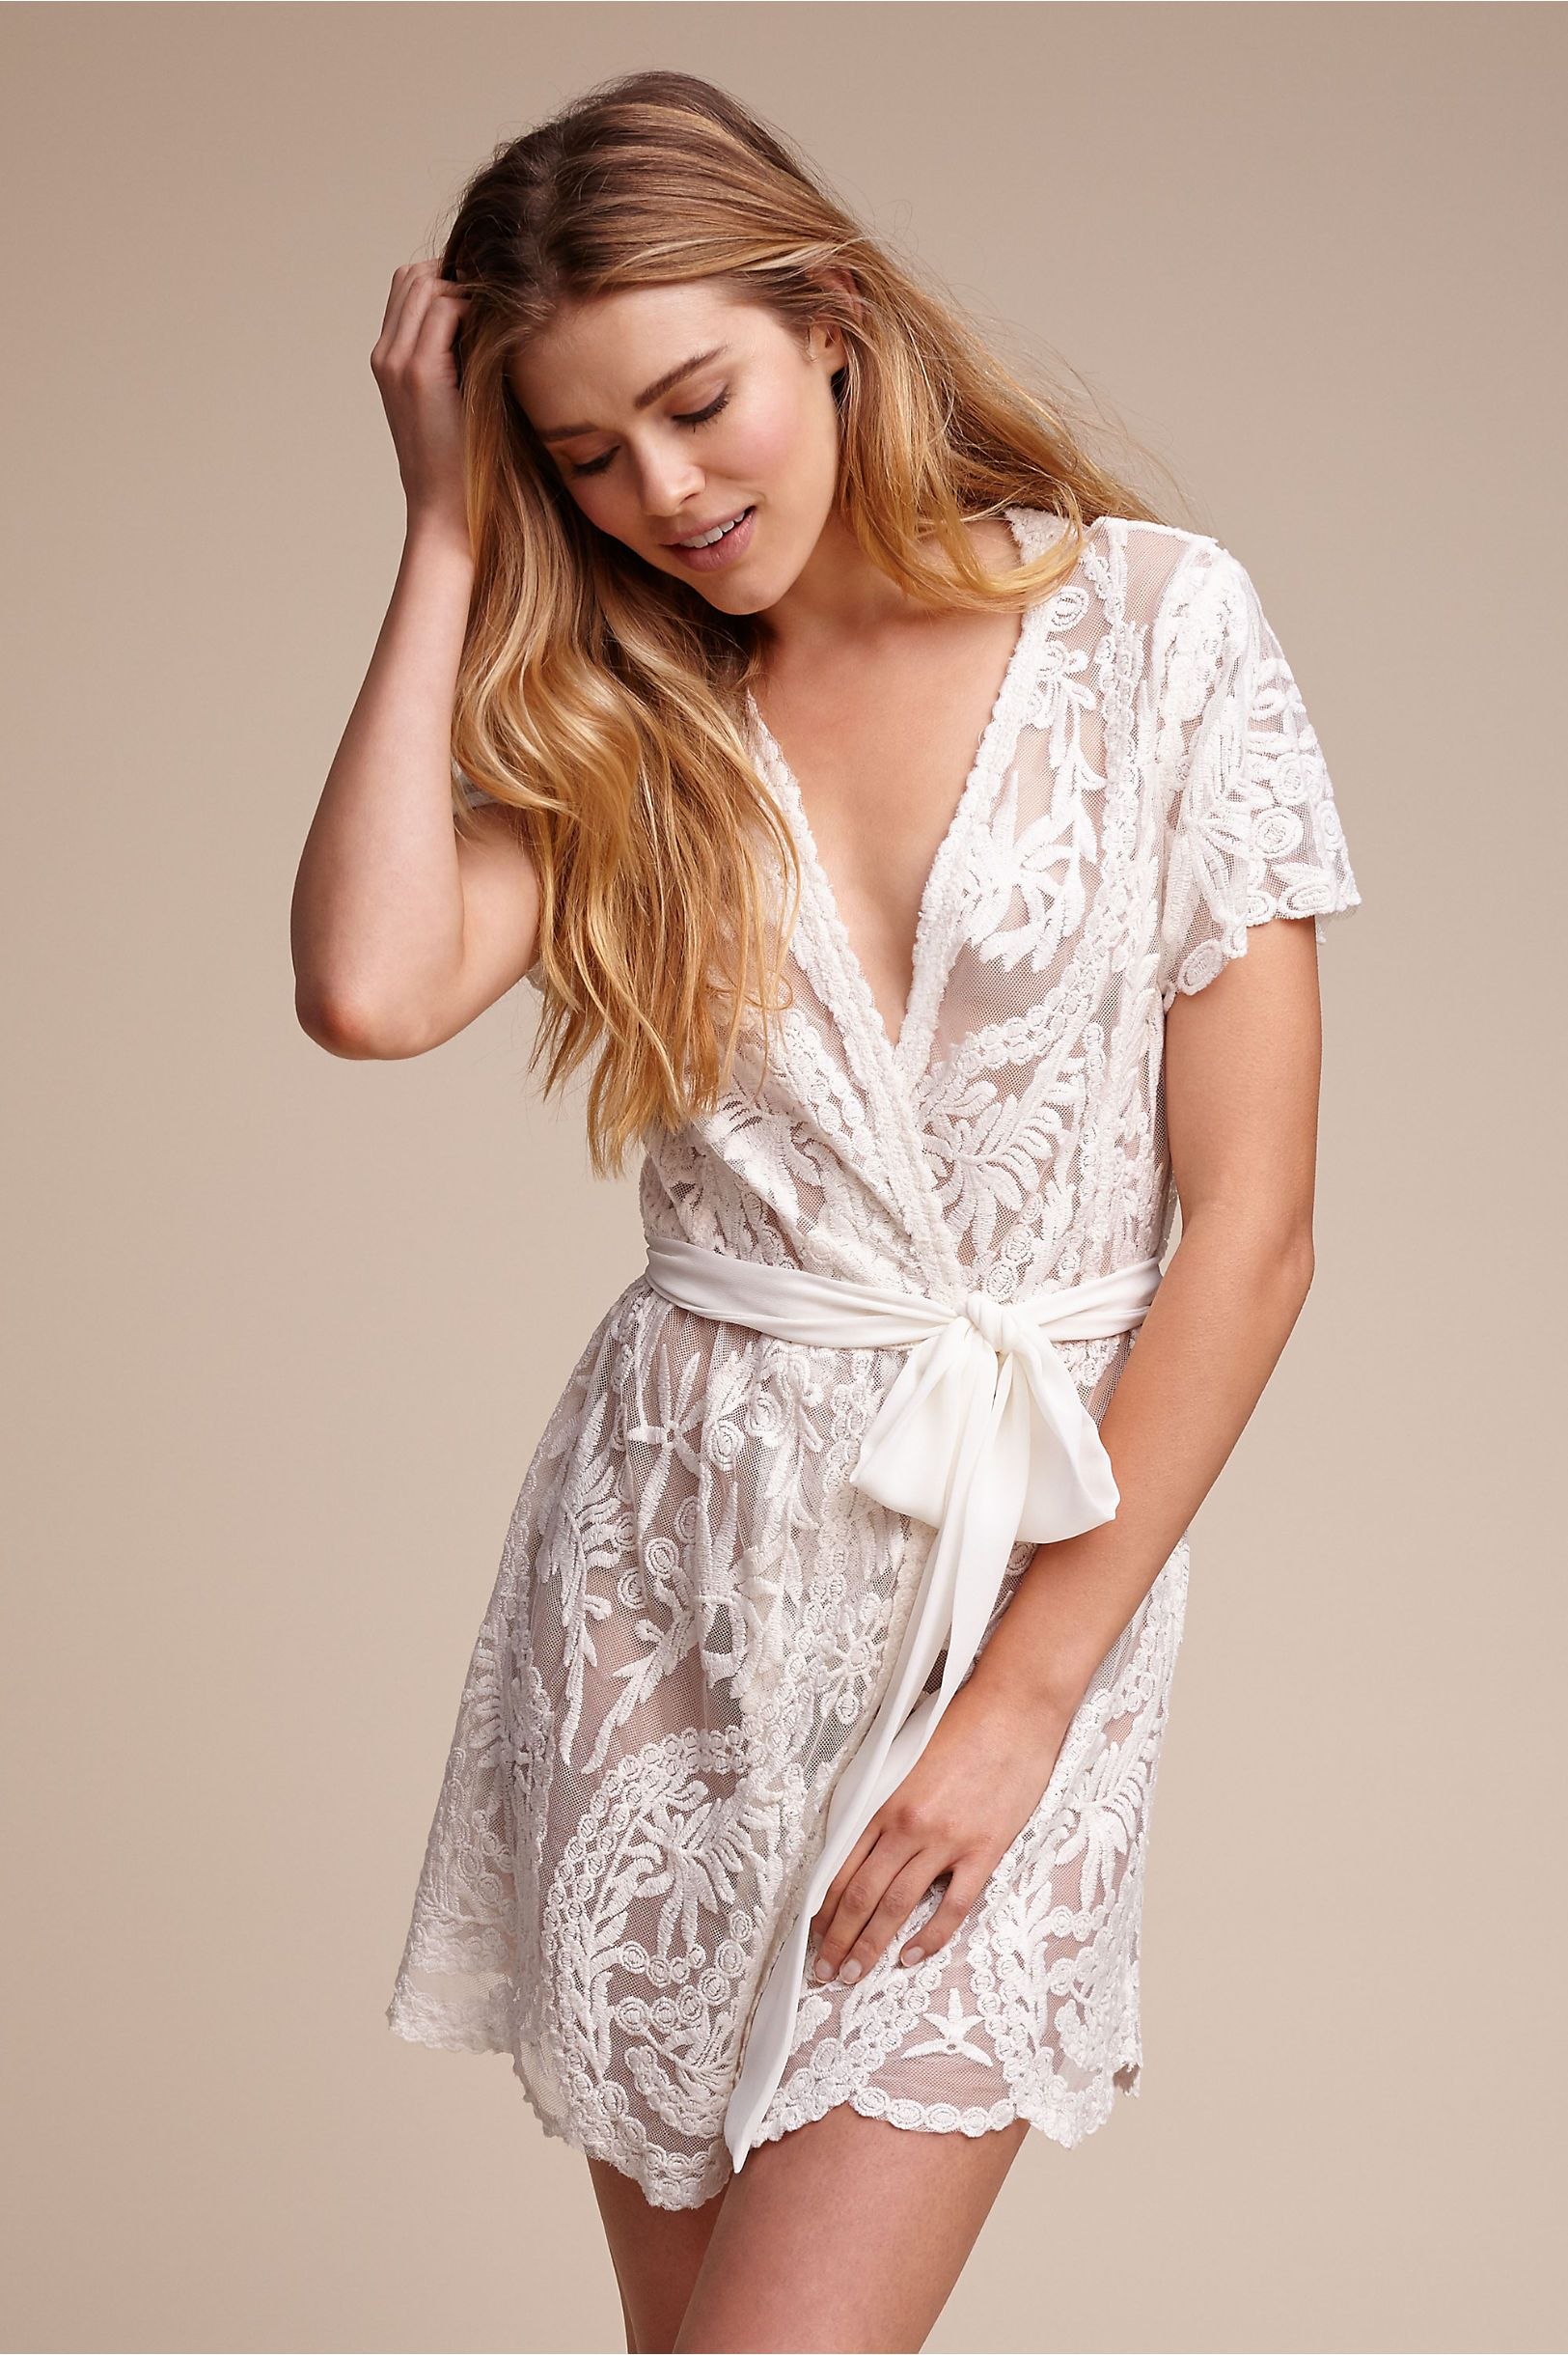 BHLDN Oleya Robe in  Beach & Honeymoon Lingerie | BHLDN #beachhoneymoonclothes